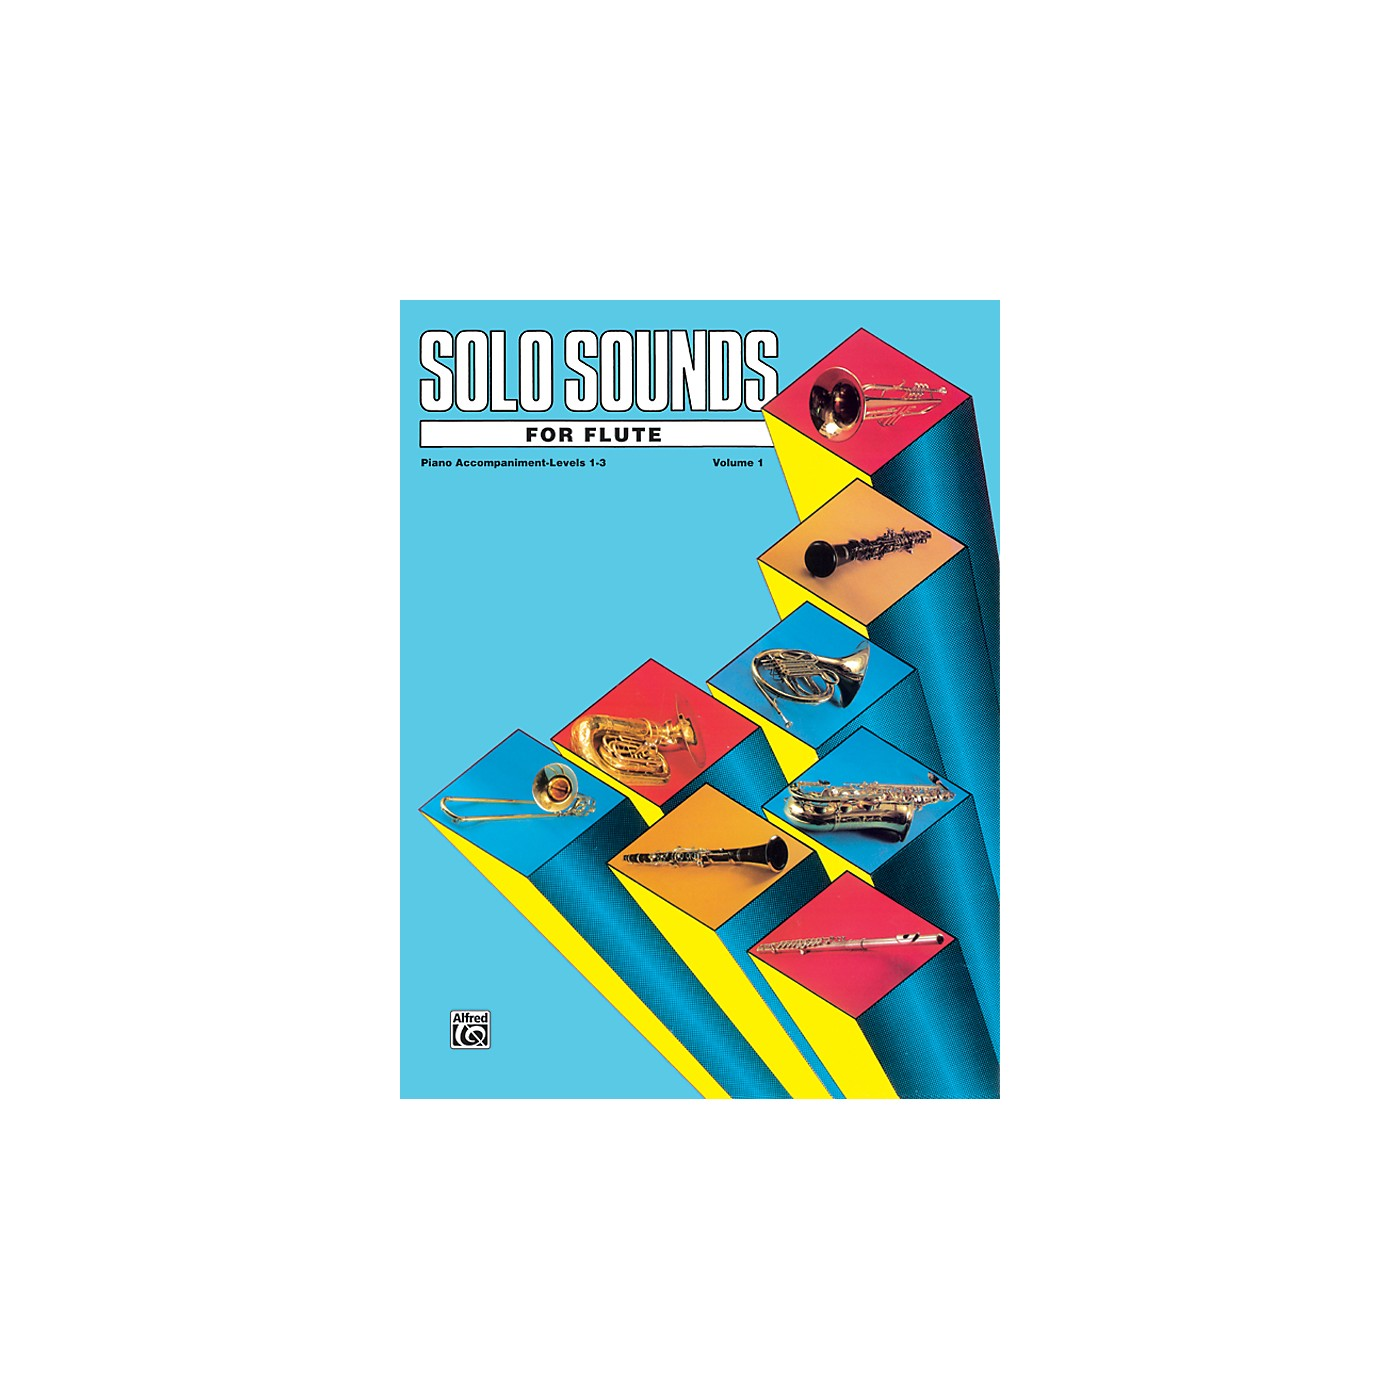 Alfred Solo Sounds for Flute Volume I Levels 1-3 Levels 1-3 Piano Acc. thumbnail